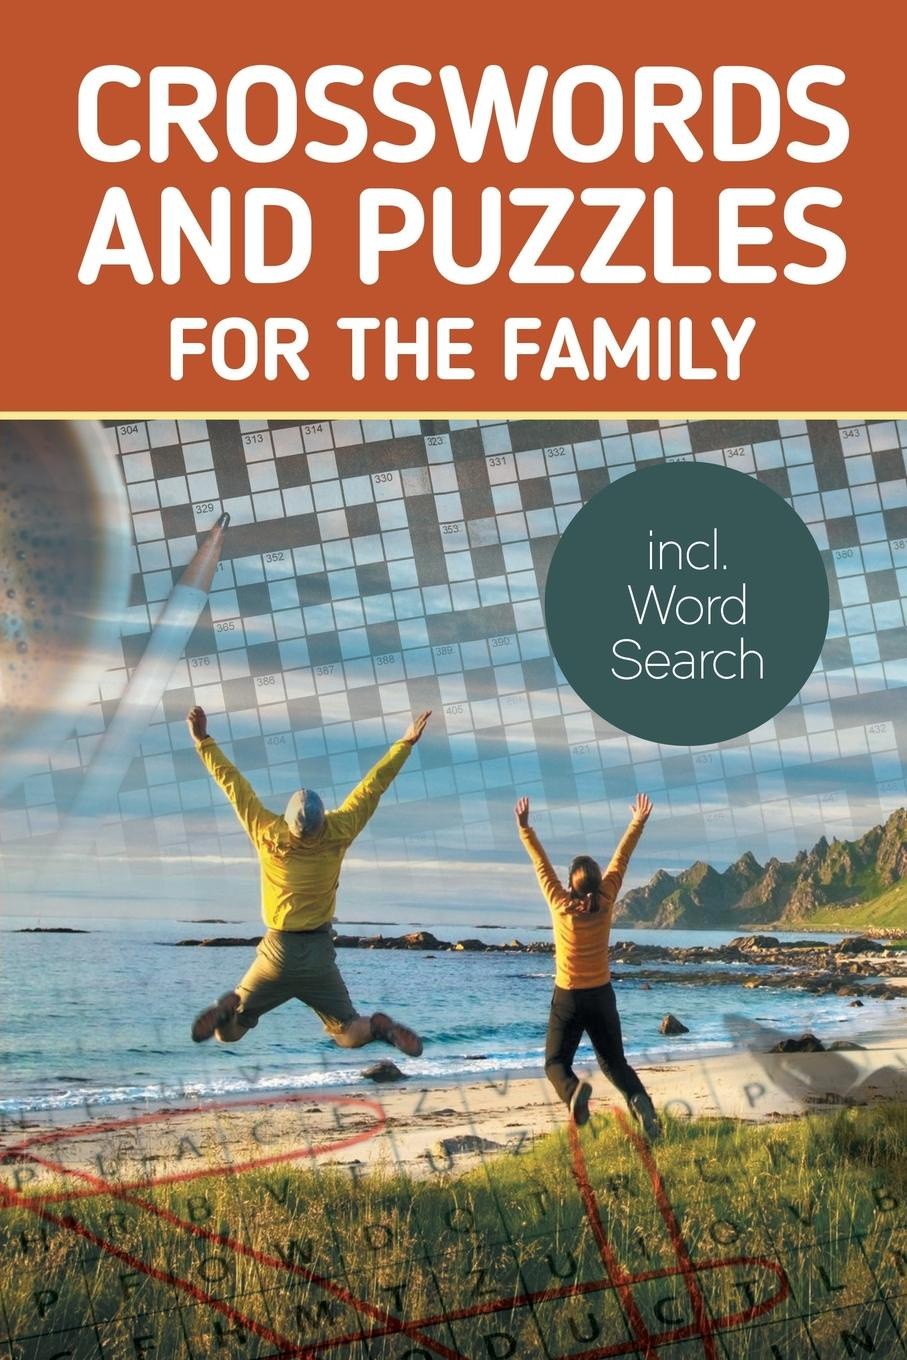 Speedy Publishing LLC Crosswords And Puzzles For The Family incl. Word Search